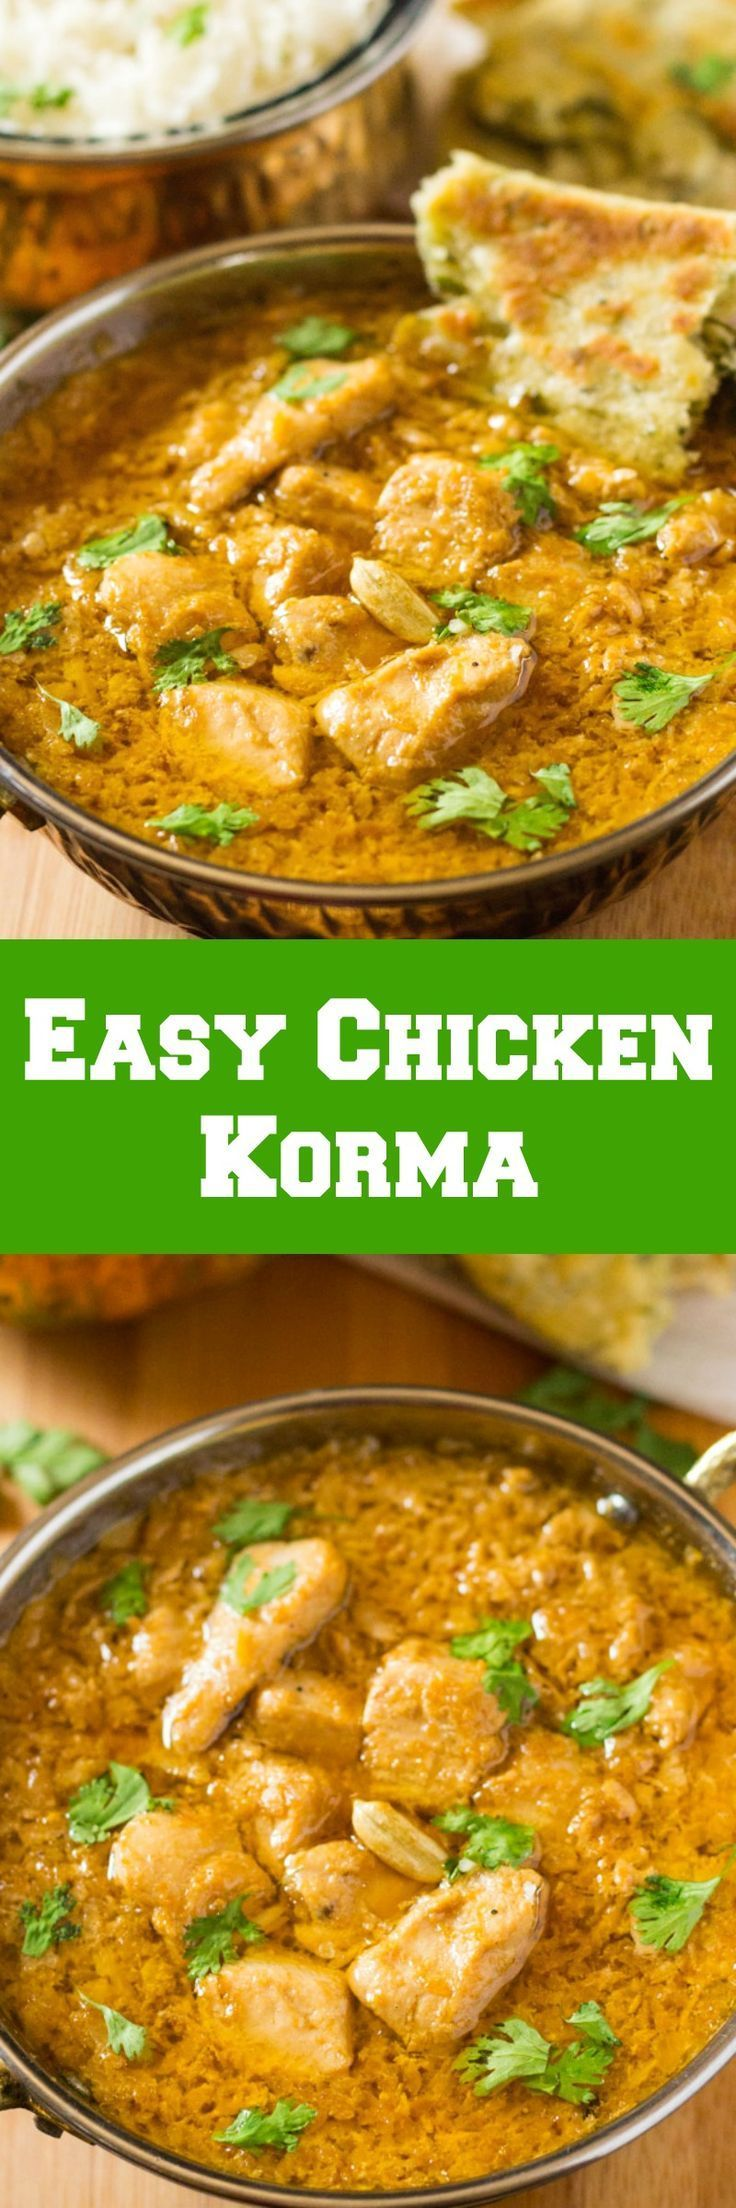 This Easy Chicken Korma Curry is so delicious and simple to make for a special dinner. Faster and better than take out curry!